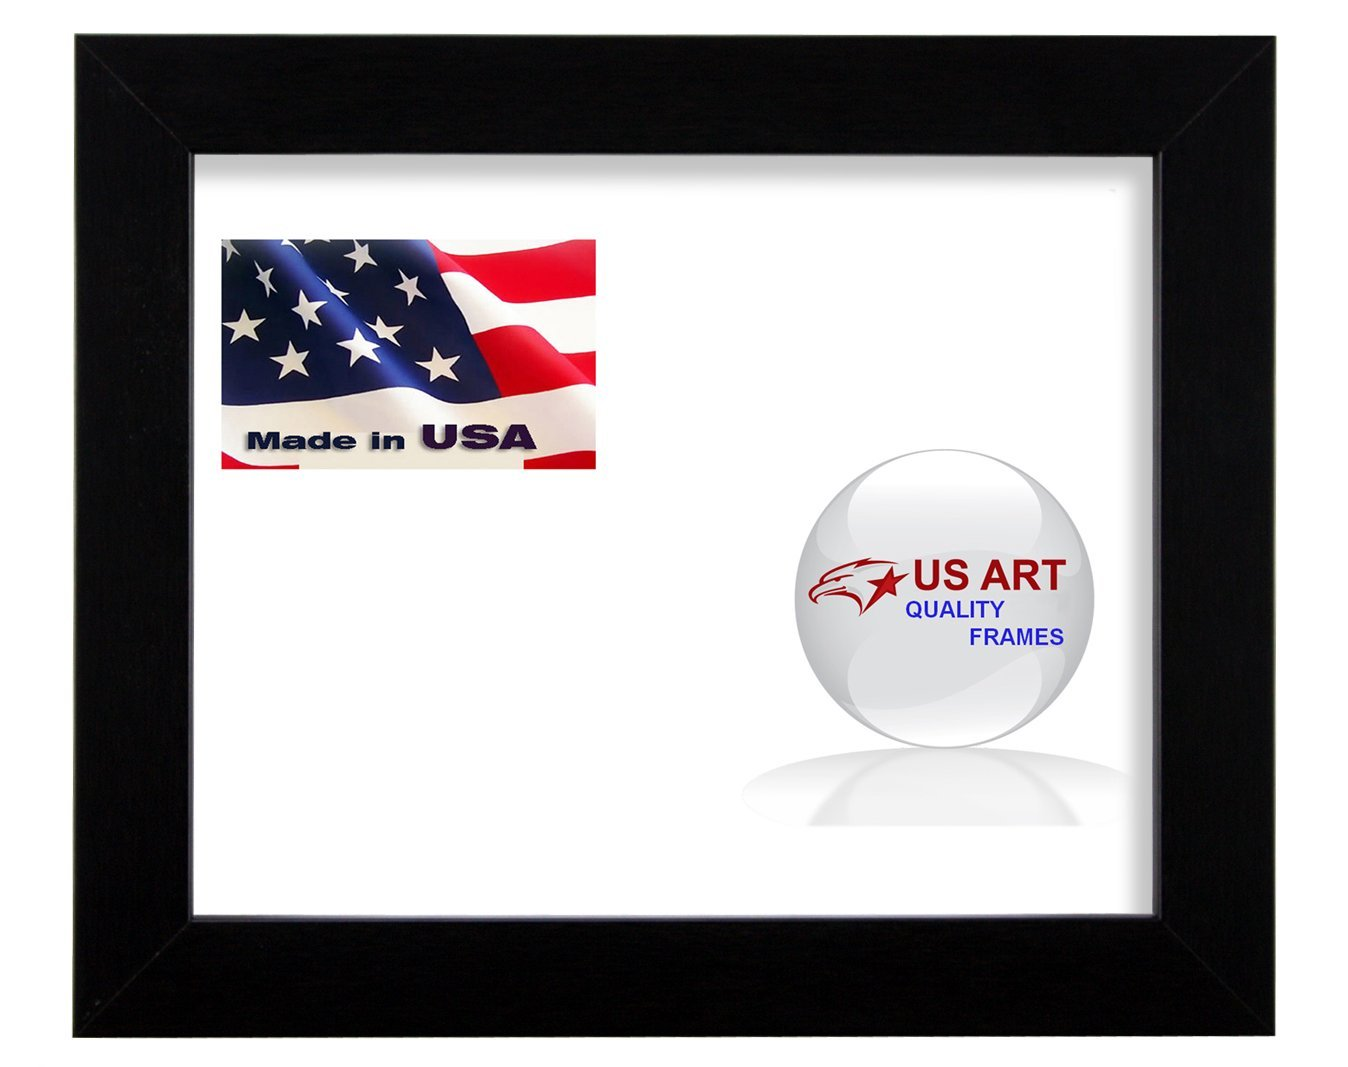 24x30 Custom Satin Black Wrapped Finish Picture Poster Photo Frame Wood Composite Mdf 1.25 inch Wide Moulding